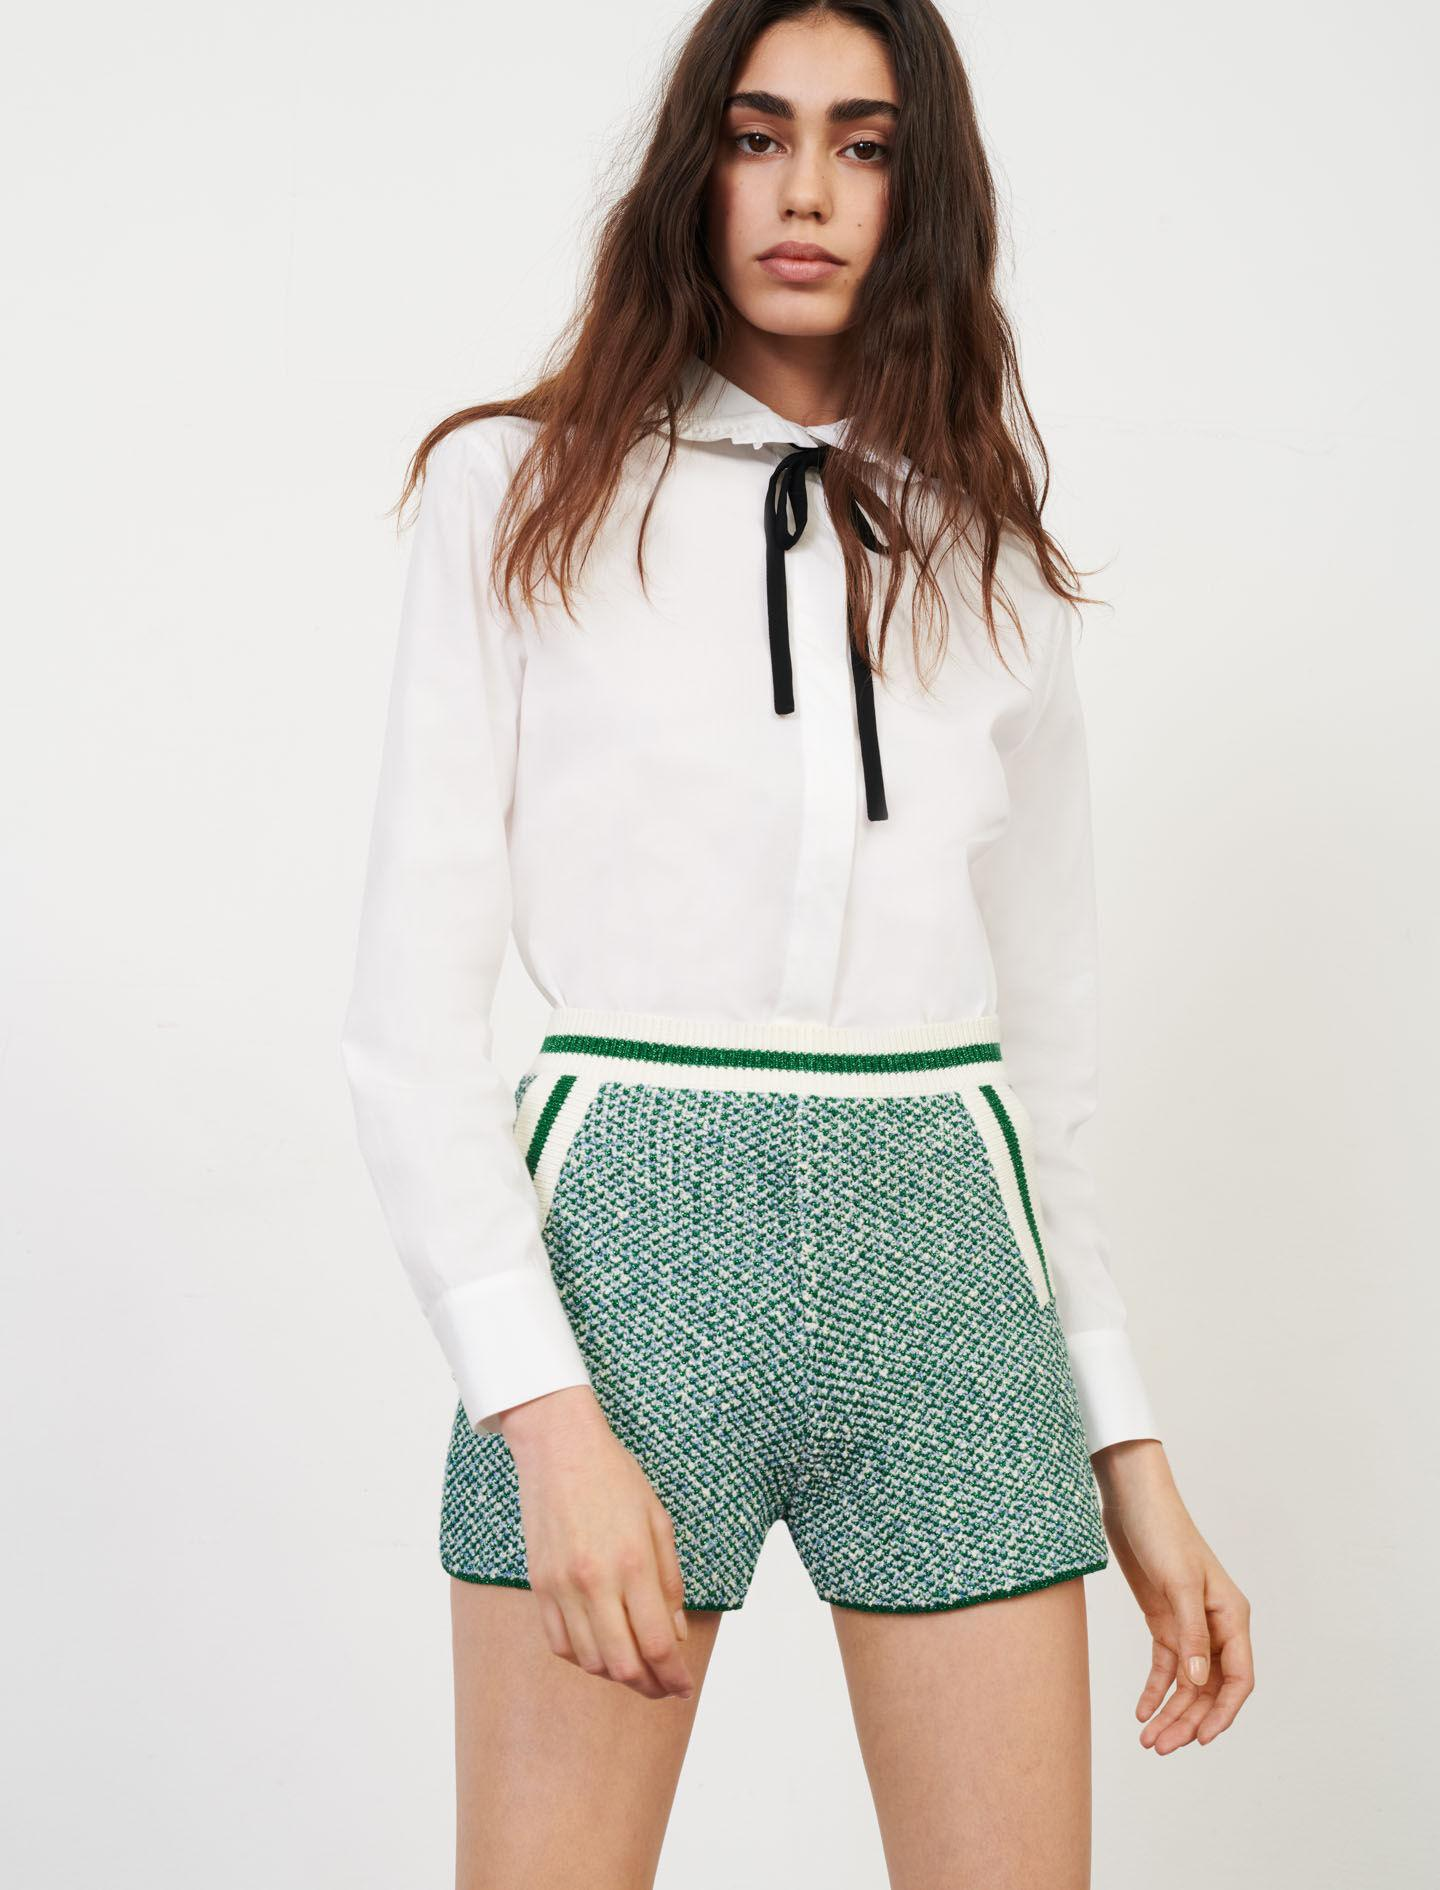 KNIT SHORTS WITH CONTRASTING BANDS